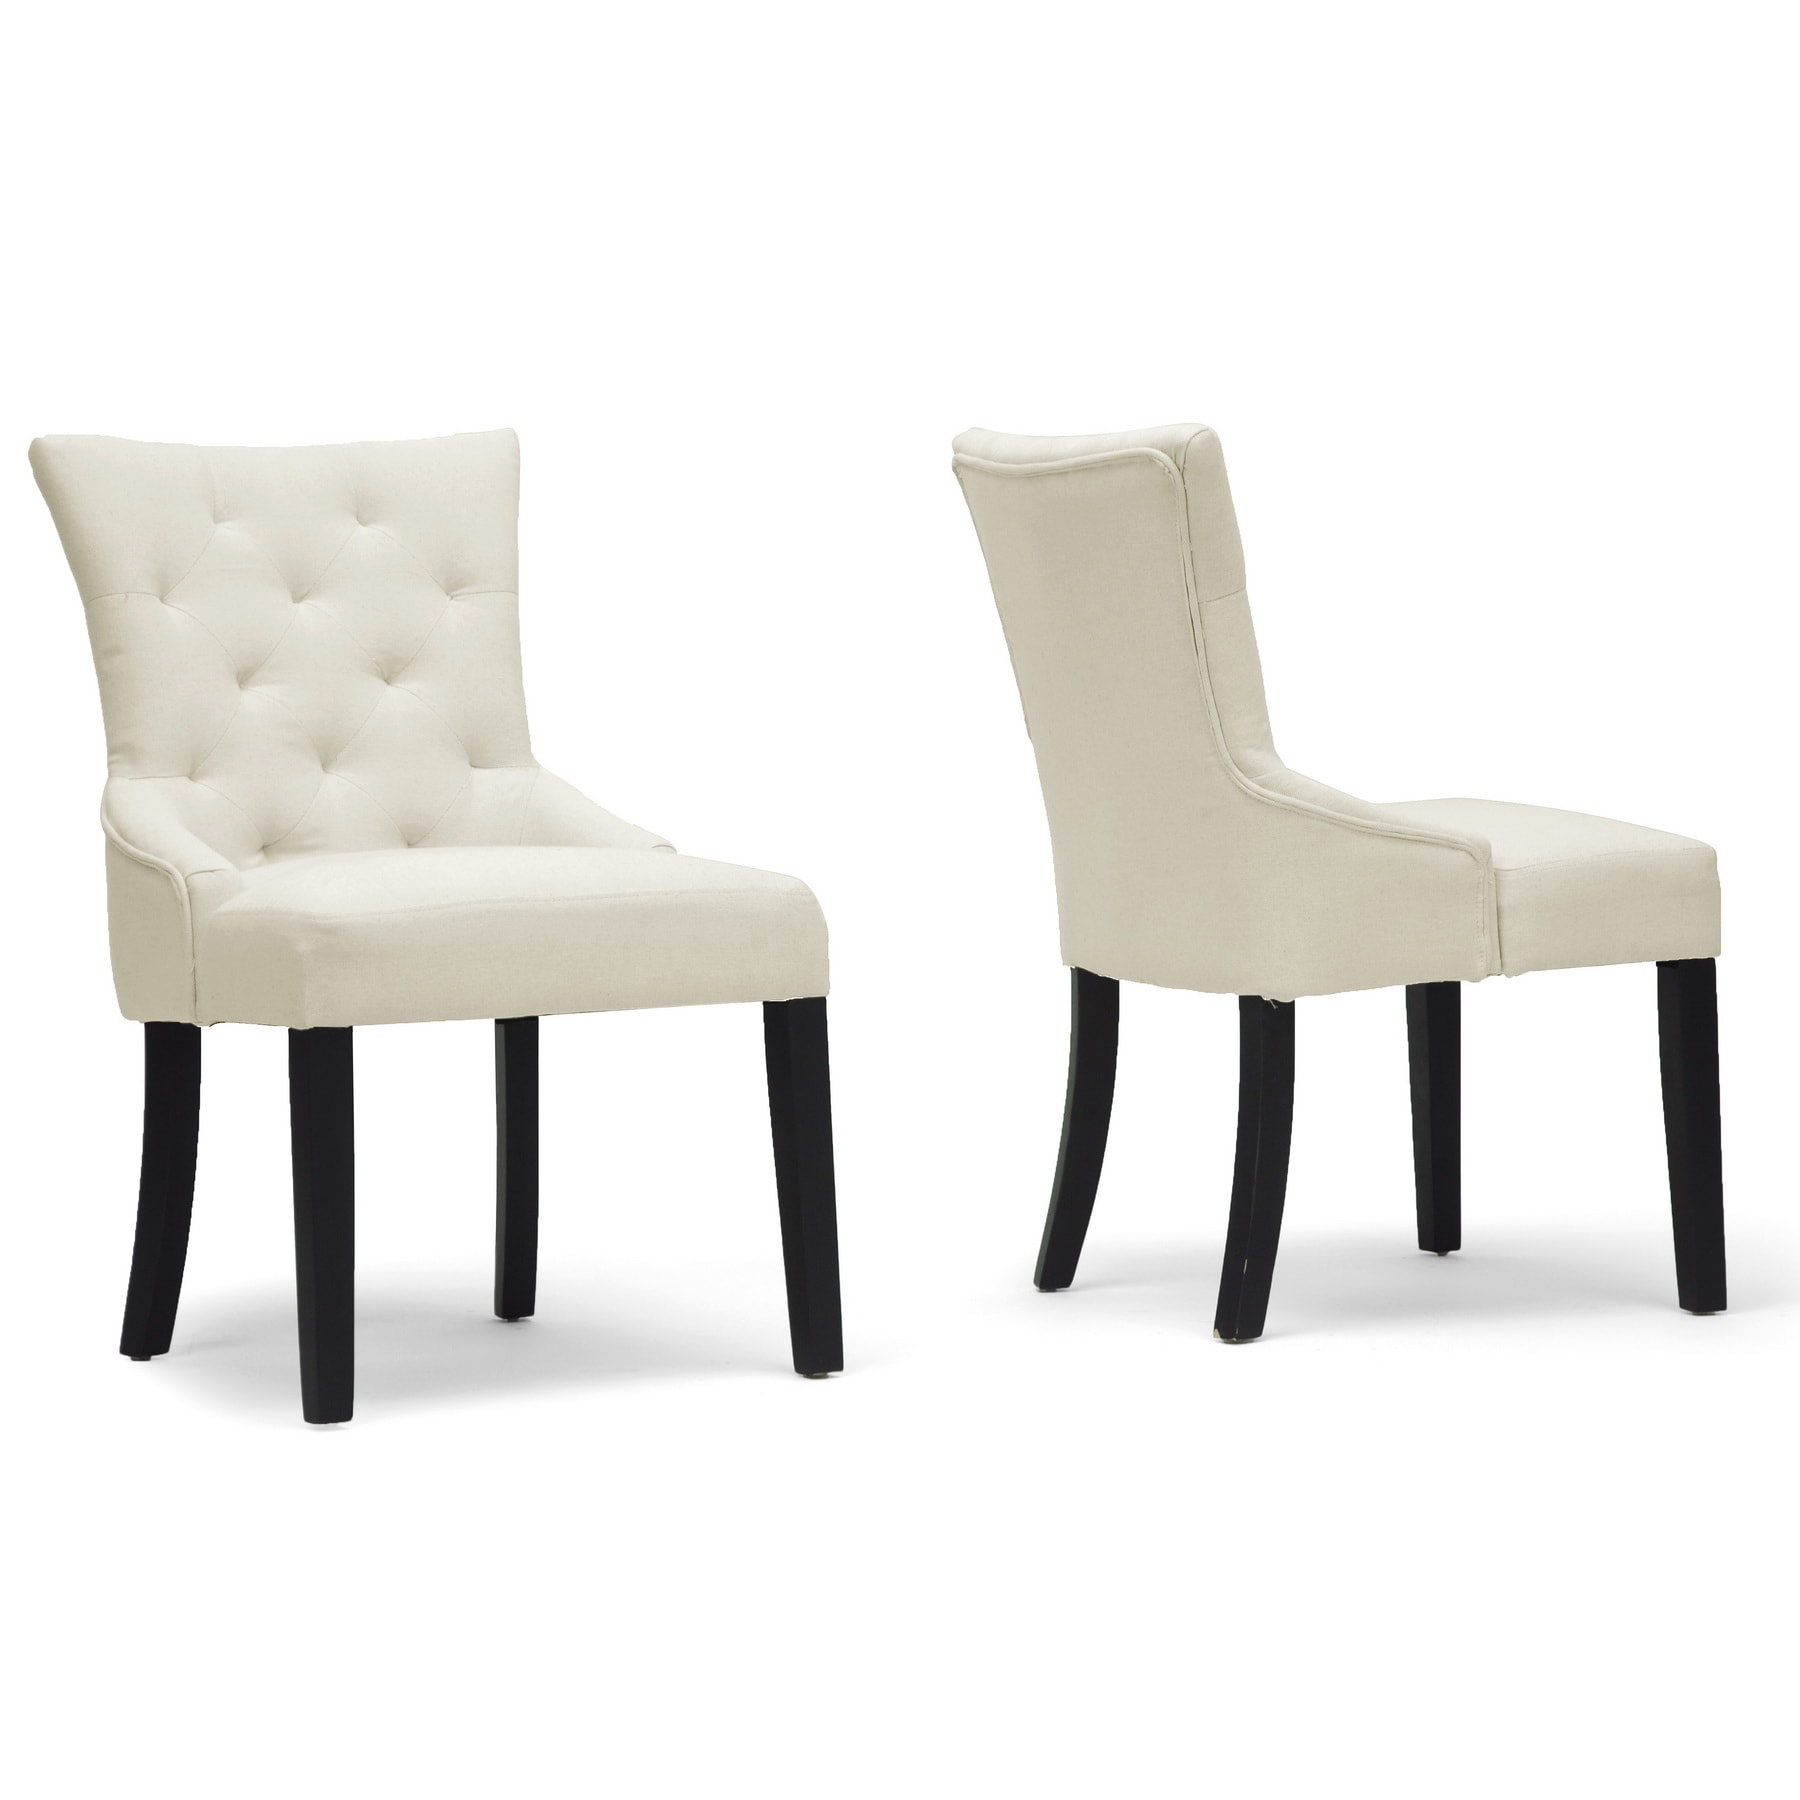 Baxton Studio Dining Chairs Overstock Shopping The Best Prices Online